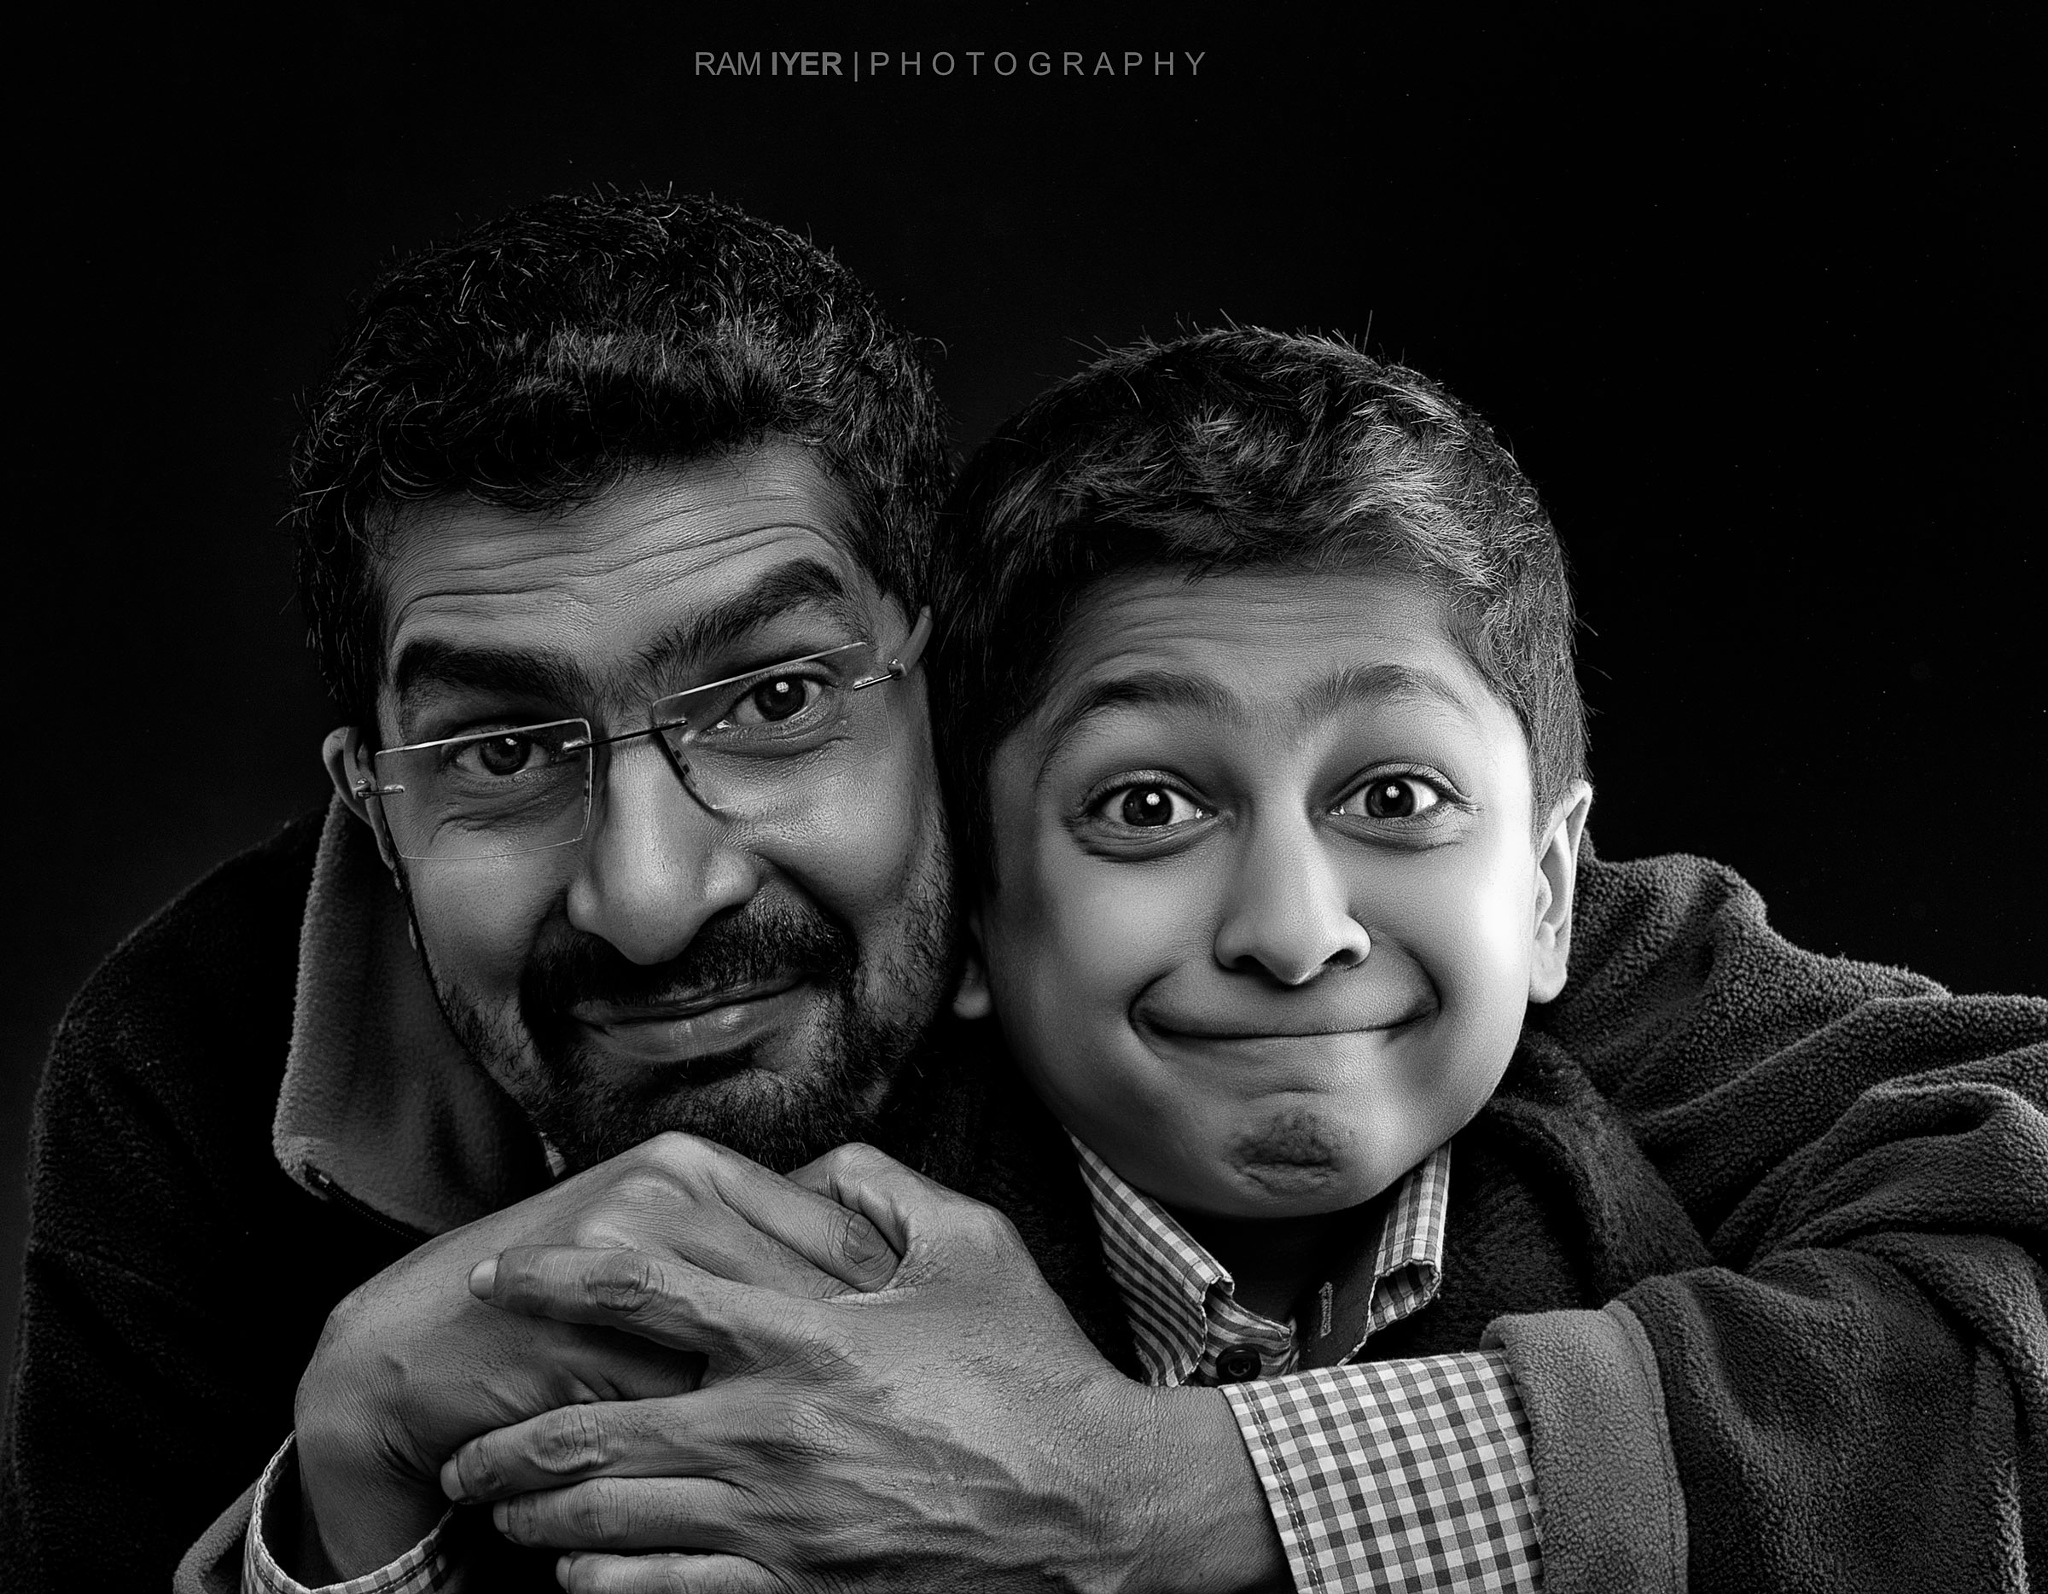 Me and My real DSLR - Ram the Junior.  by Ram Iyer